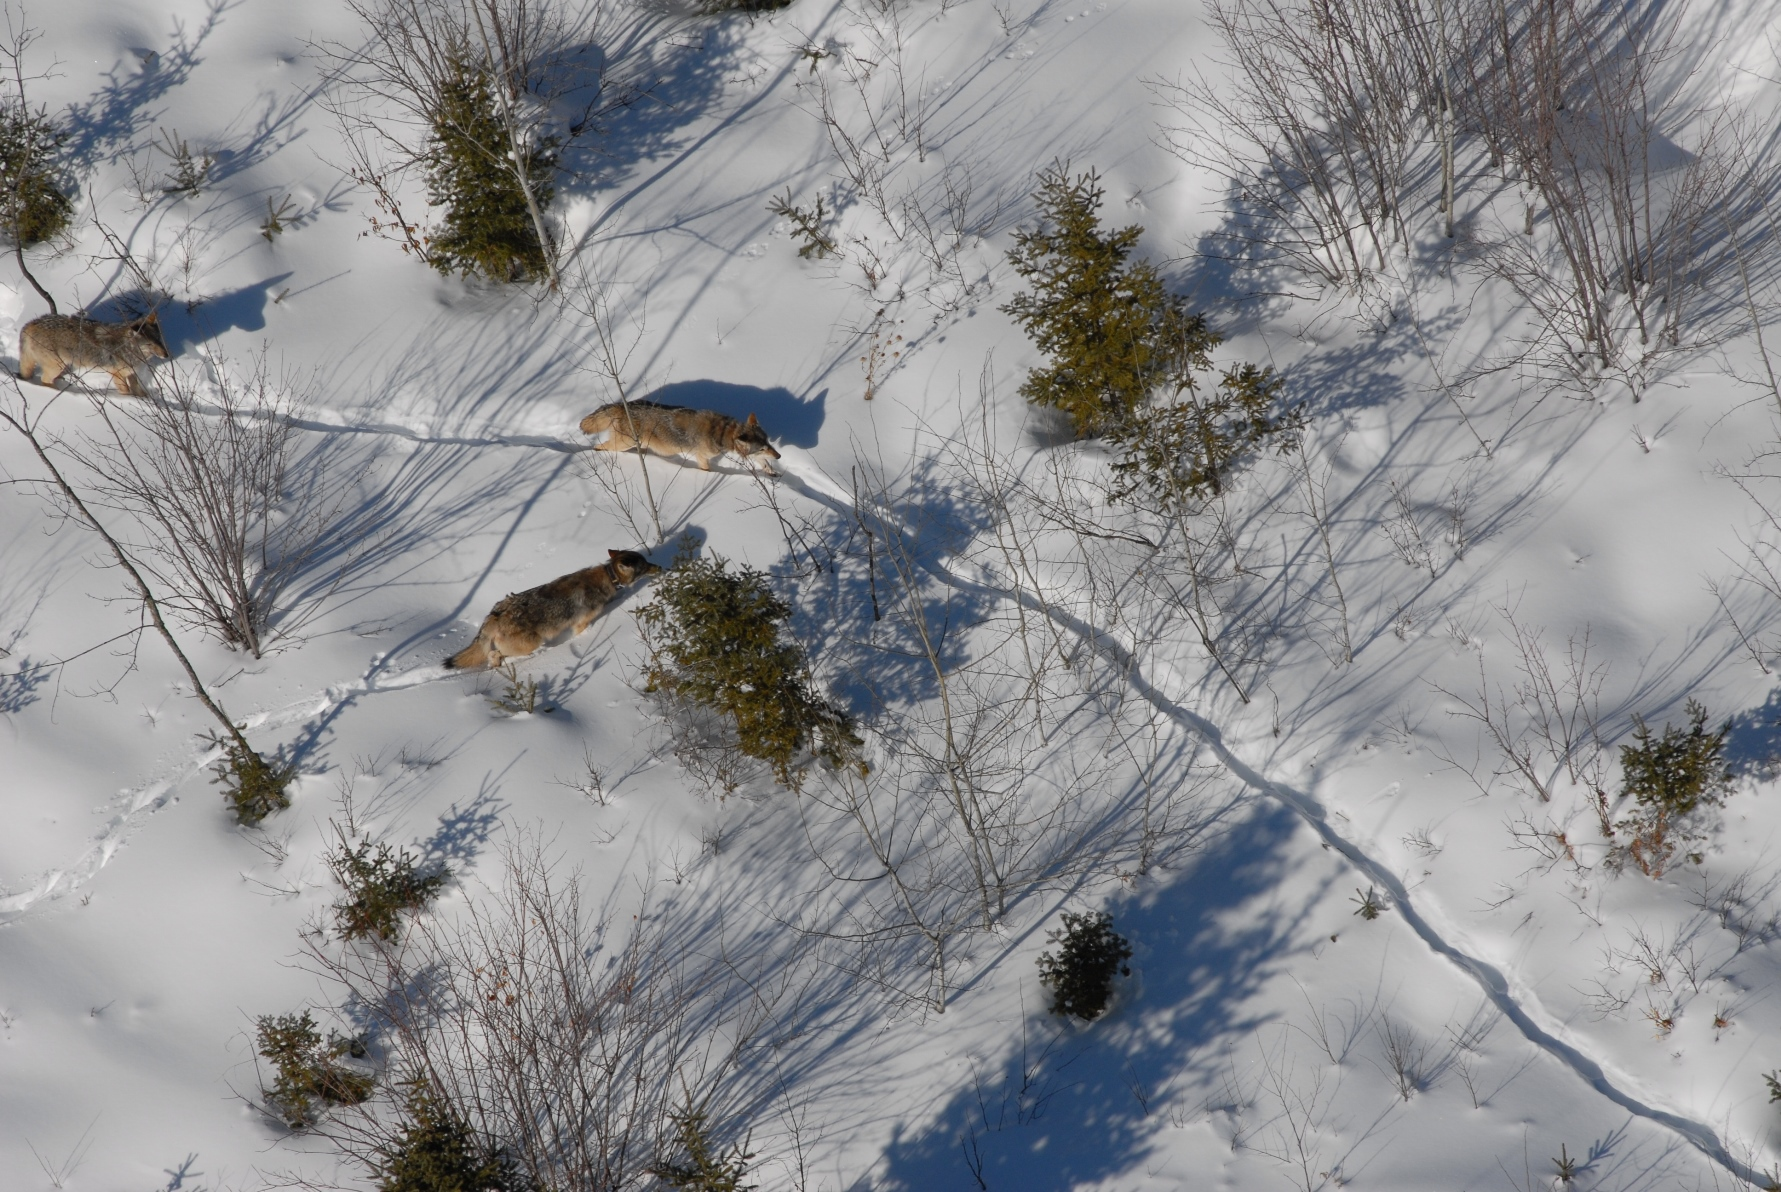 An aerial photograph shows part of the Upper Peninsula's wolf population. Wolf surveys are conducted every two years.